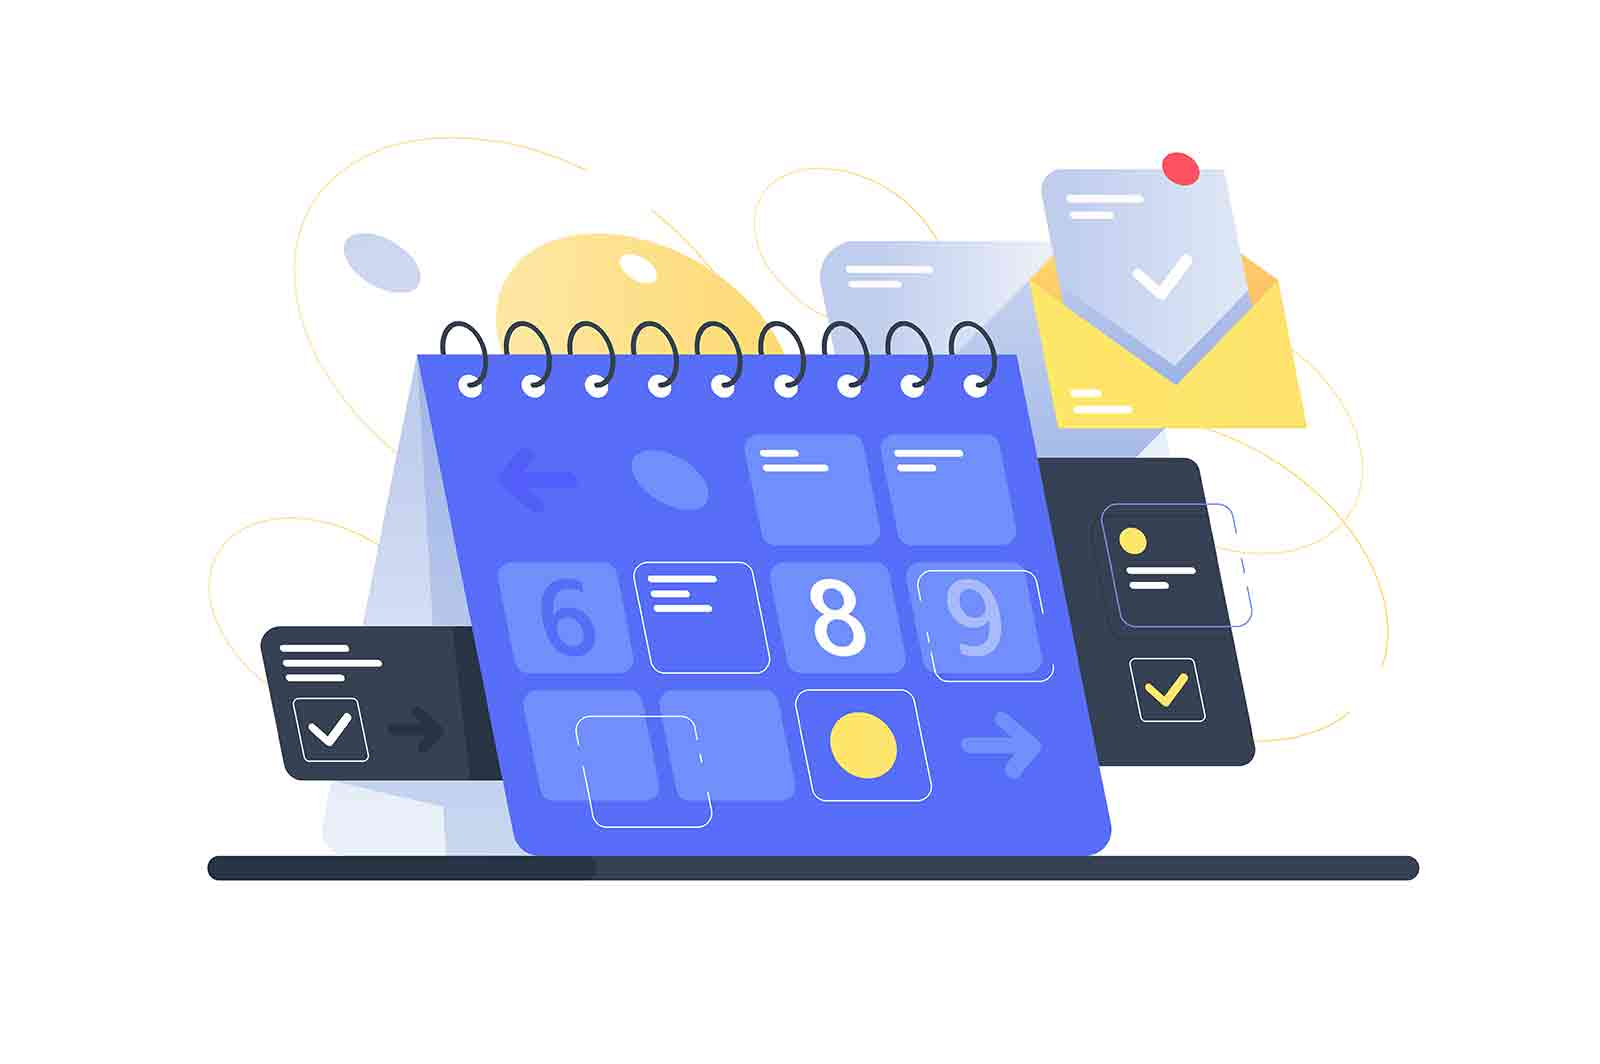 Modern calendar with task managment and mail app. Concept schedule planning business using equipment with checkbox. Low poly. Vector illustration.